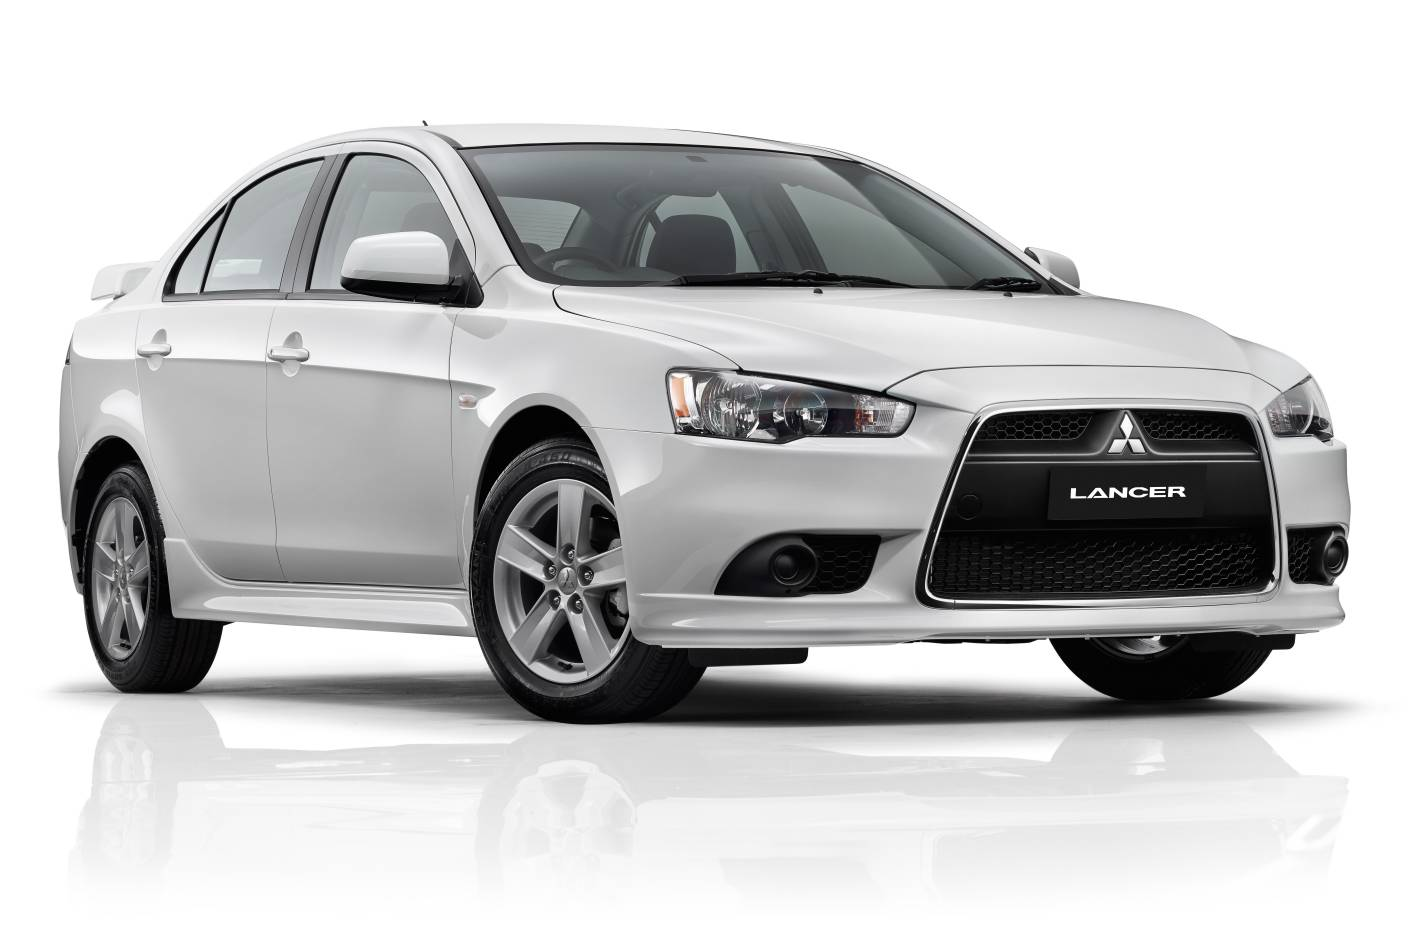 Lancer Car Review